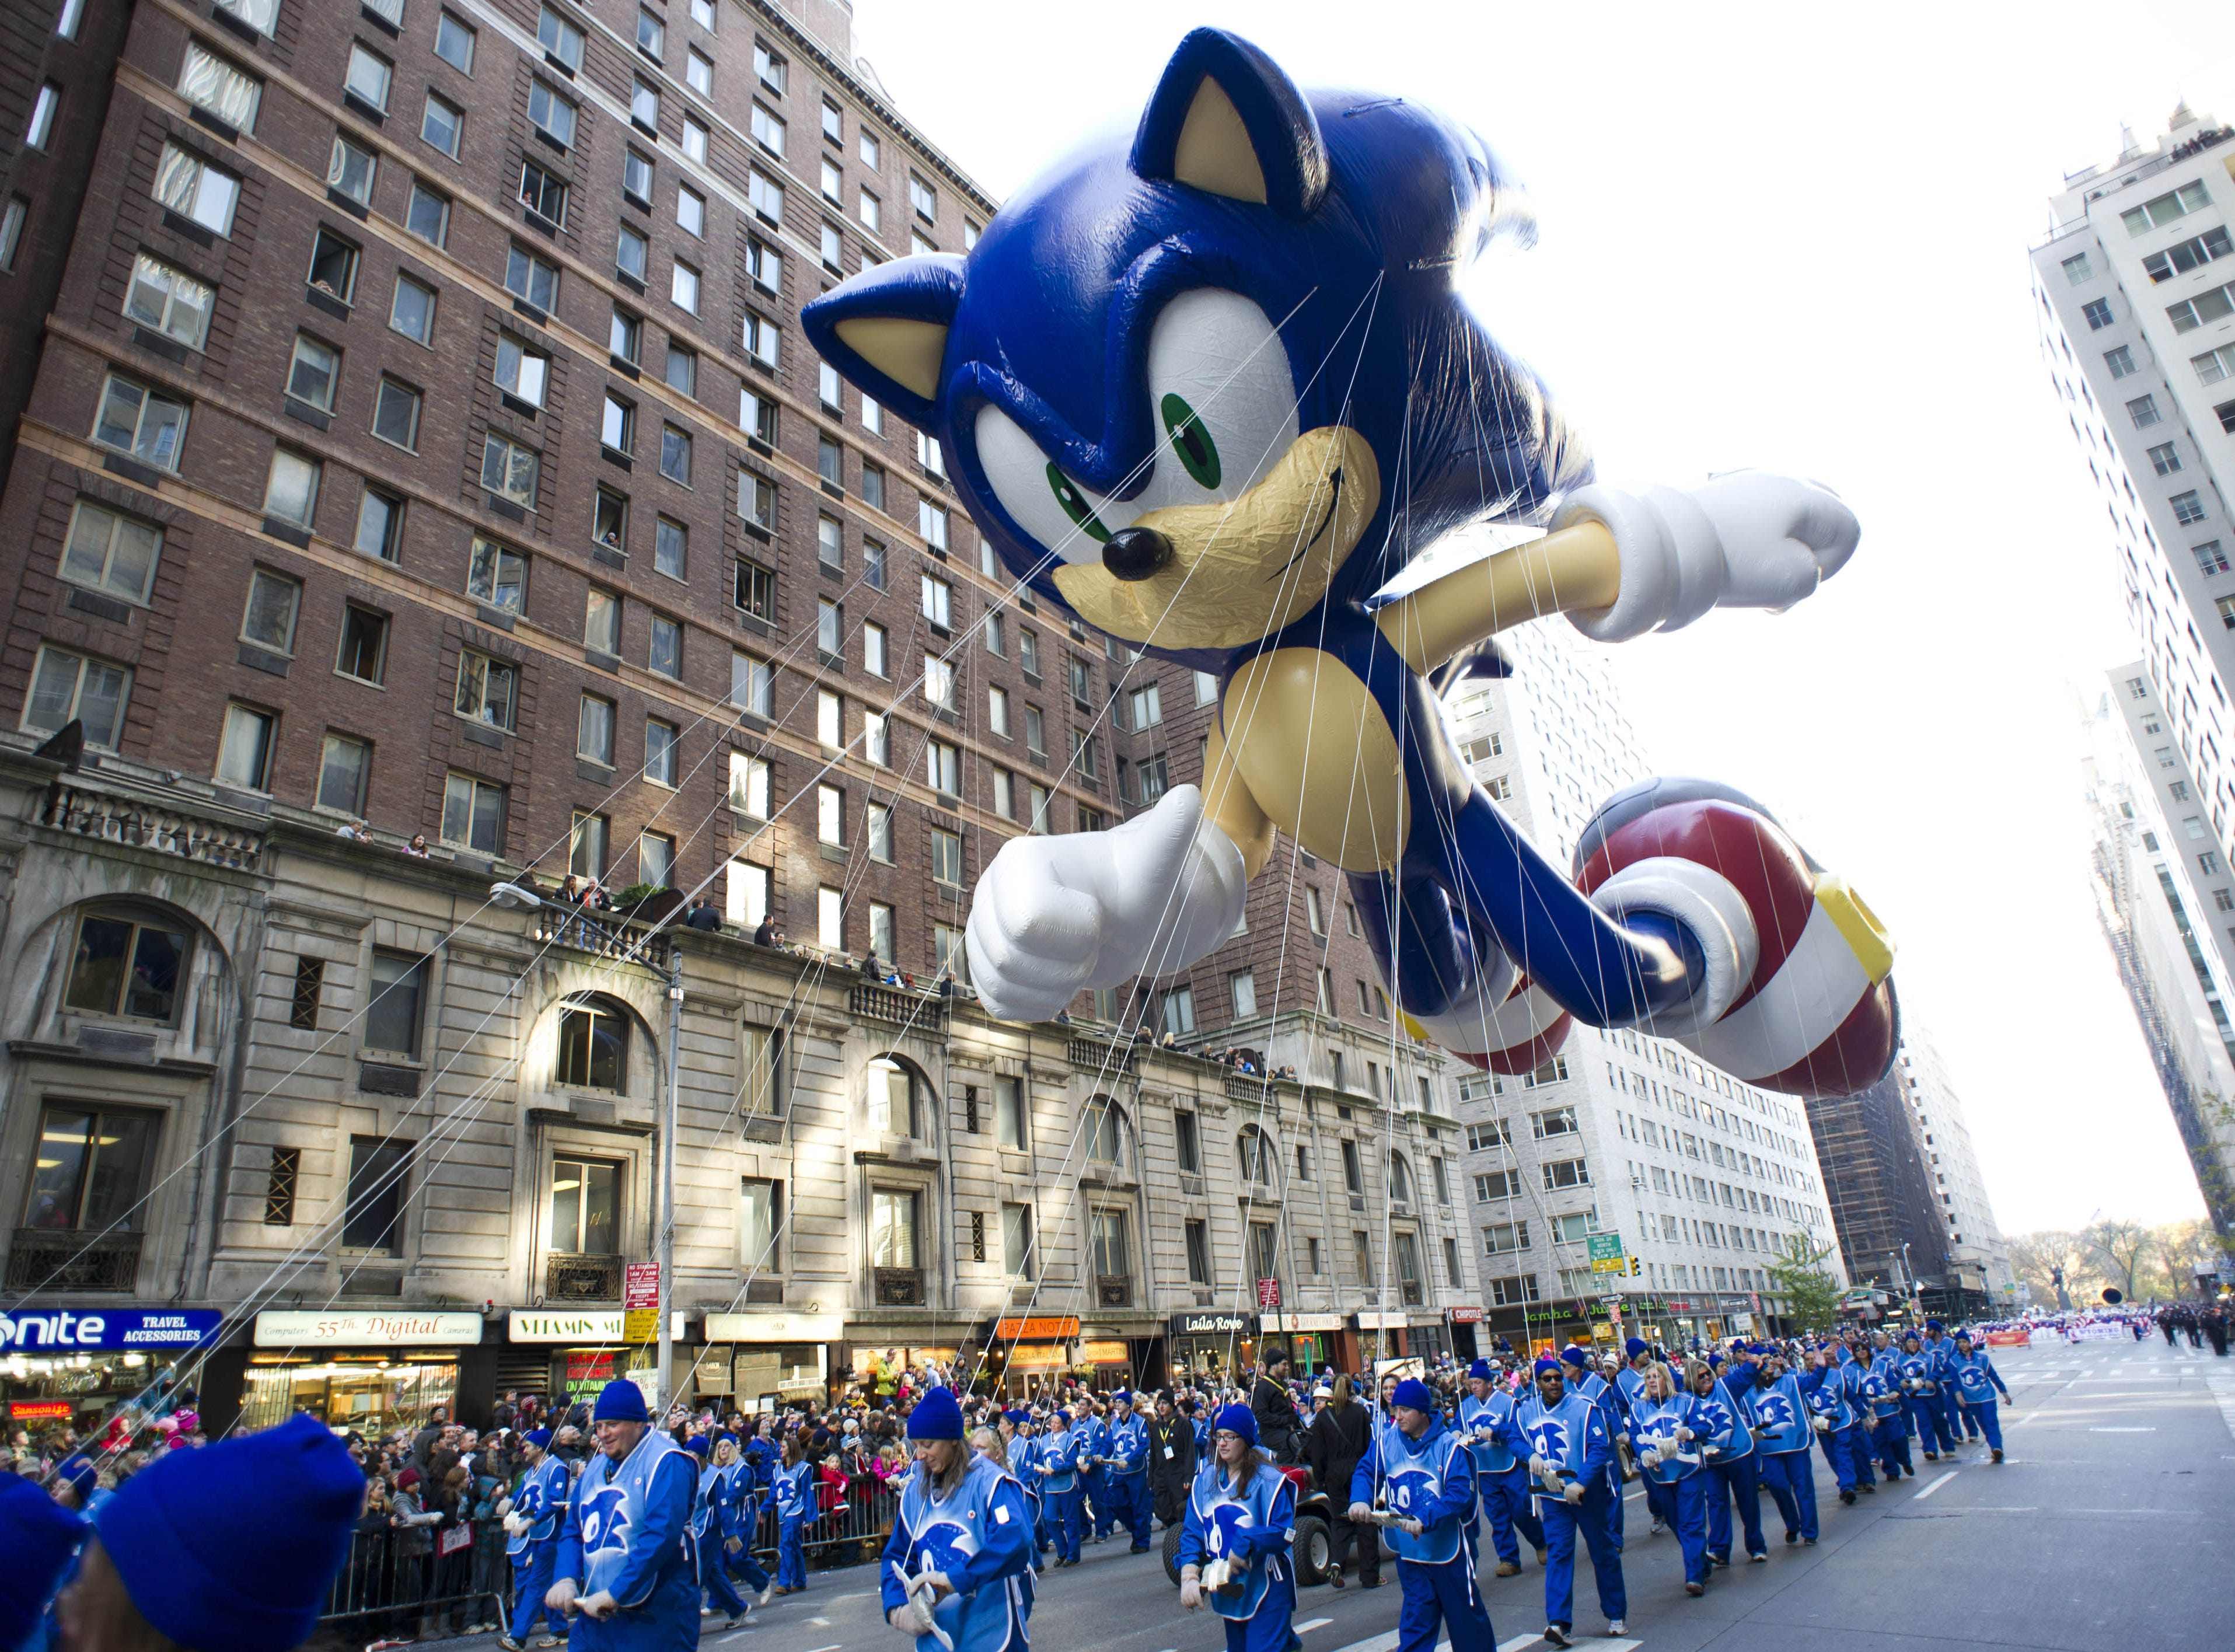 Macy?s will not allow giant balloons to fly during the parade if wind gusts are too strong. AP FILE - In this Nov. 22, 2012, file photo, handlers keep a tight rein on the Sonic the Hedgehog balloon as it travels the route of the Macy's Thanksgiving Day Parade in New York. (AP Photo/Charles Sykes, File)